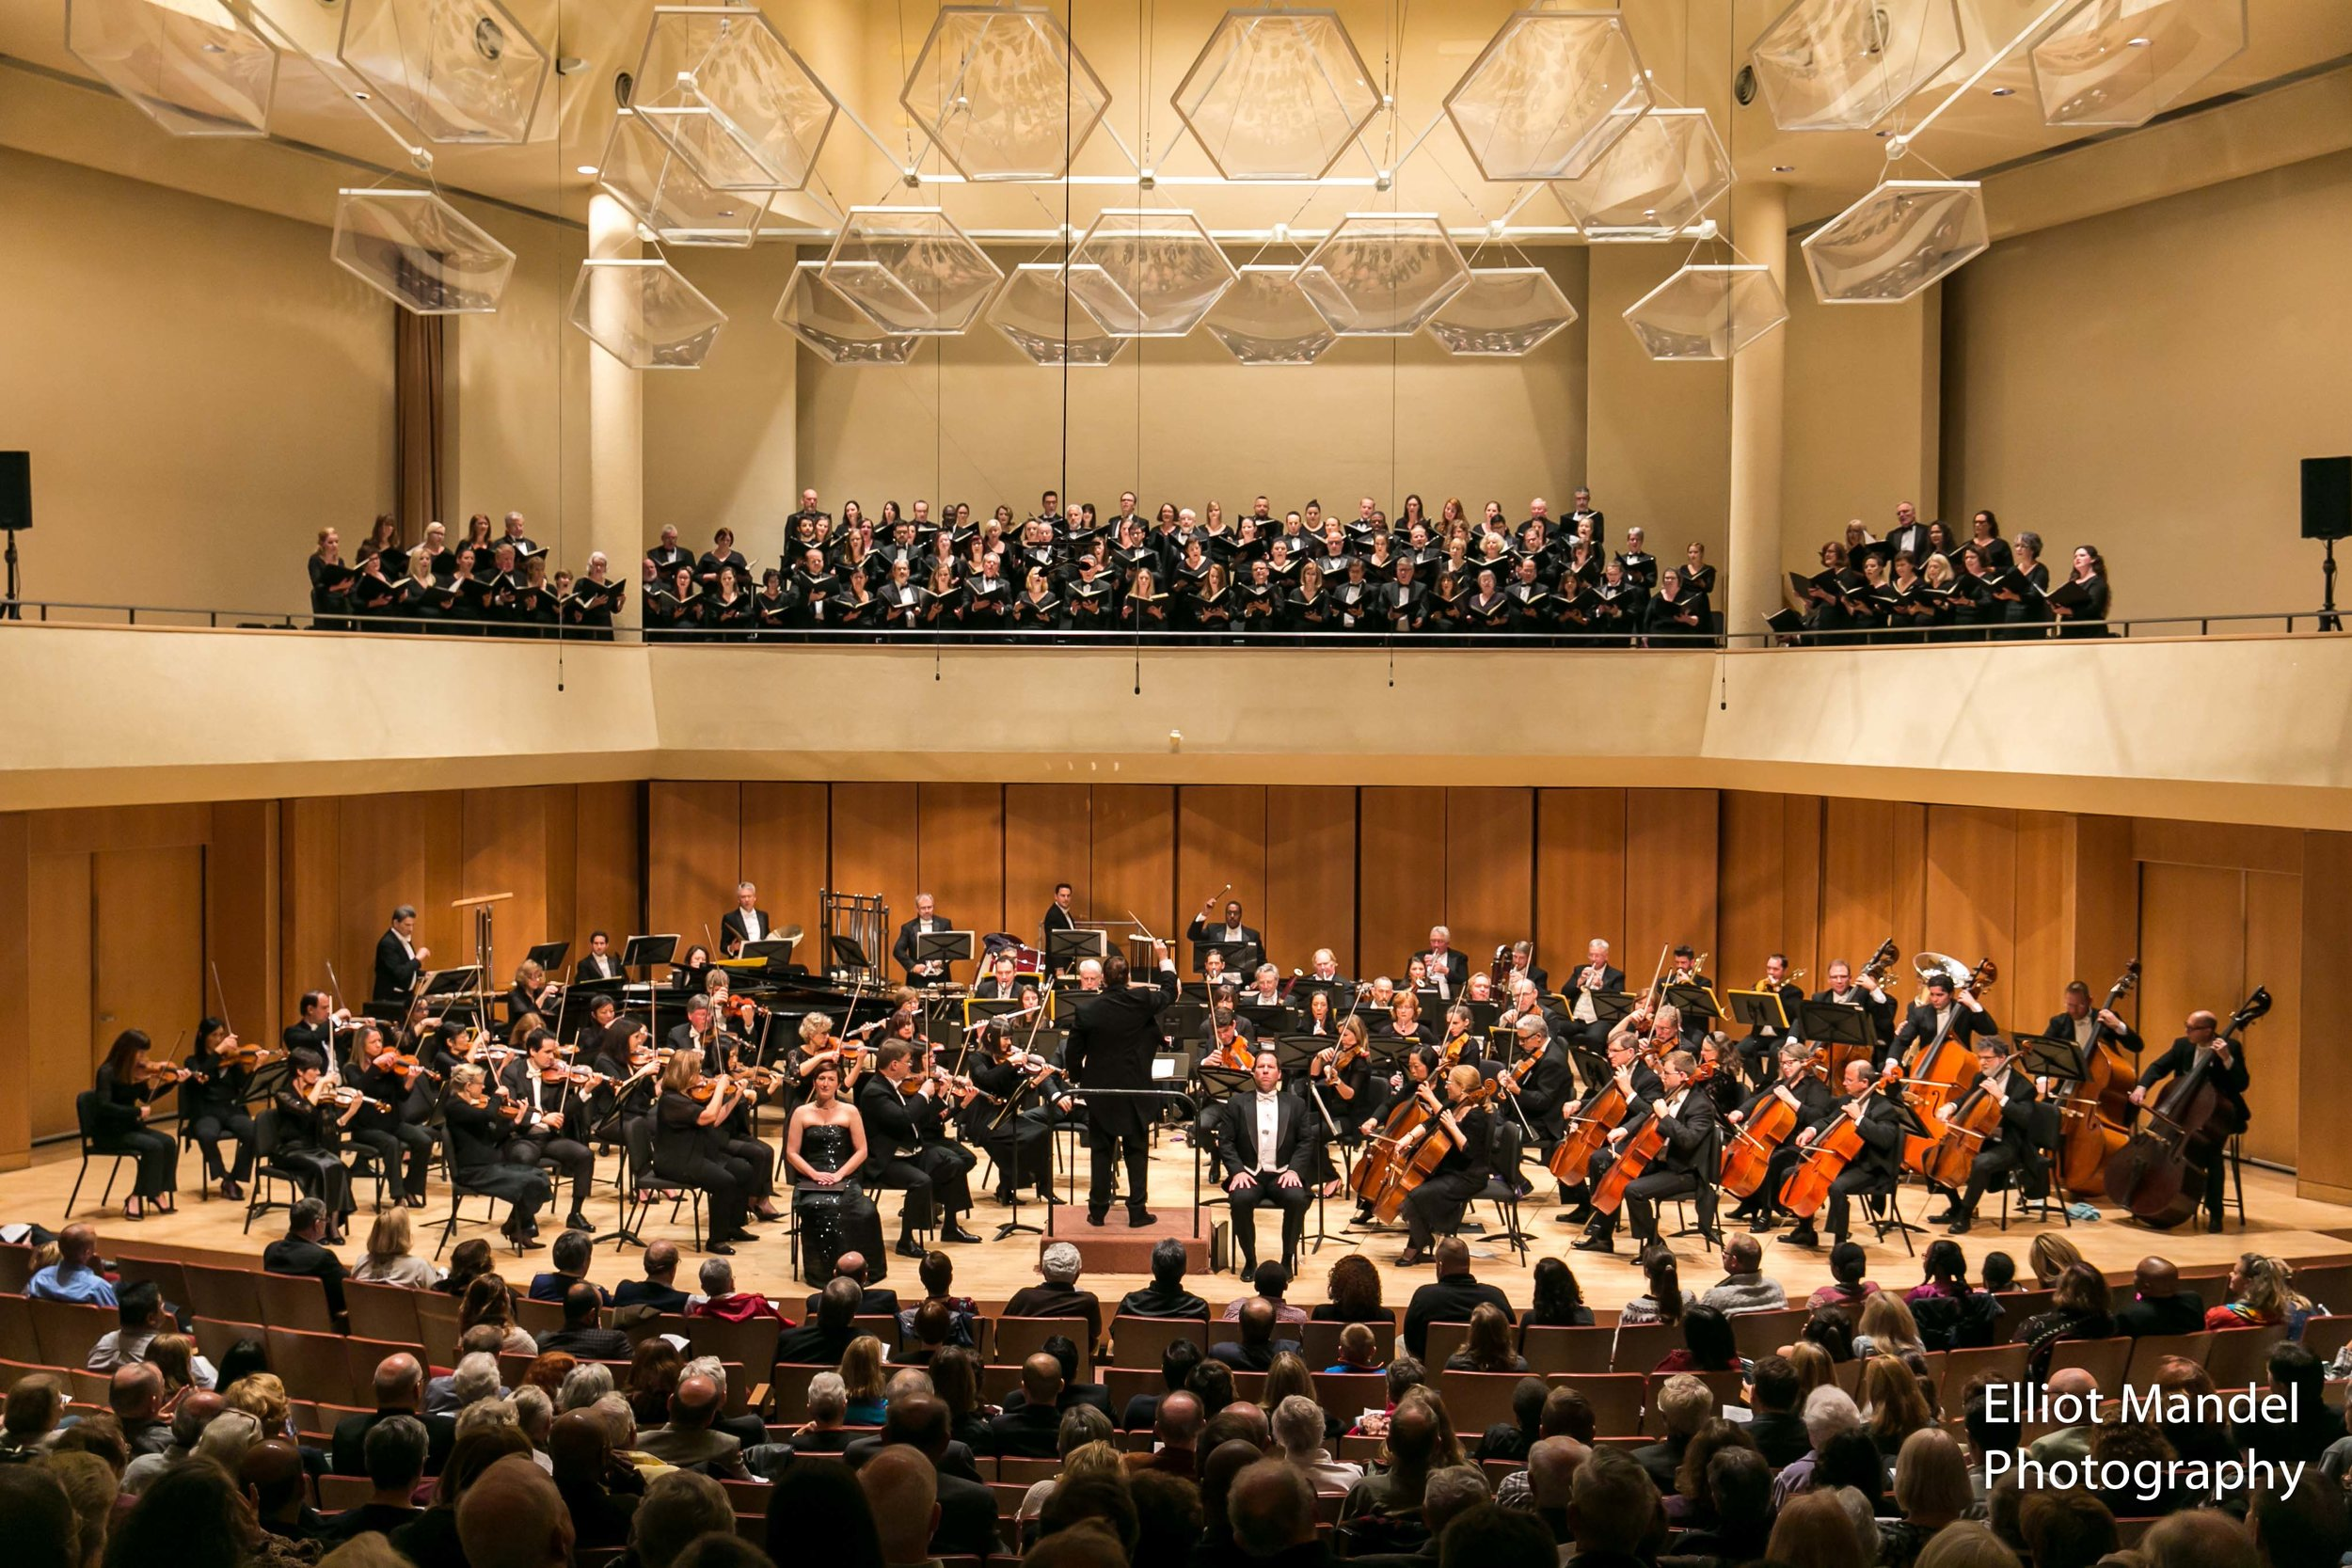 The Chicago Philharmonic opens its season with Carmina Burana.